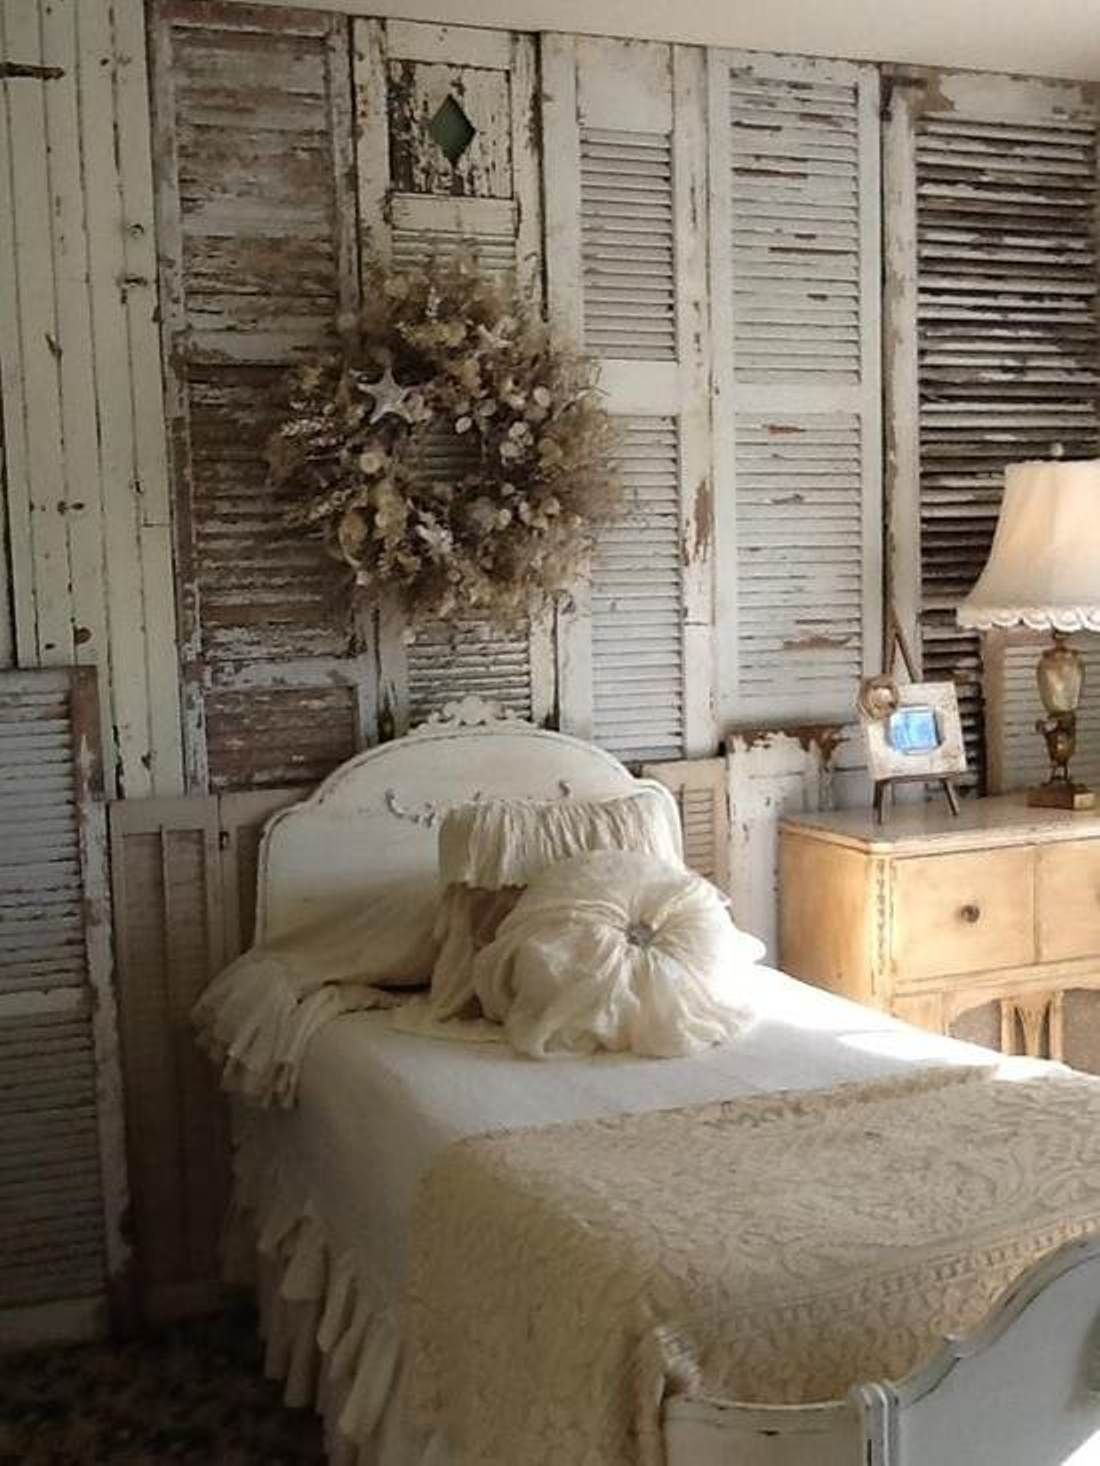 Wall Covering Redecorating Bedroom Ideas Another Cool Redecorating Bedroom Ideas Better Home A Shabby Chic Decor Bedroom Chic Bedroom Decor Chic Home Decor